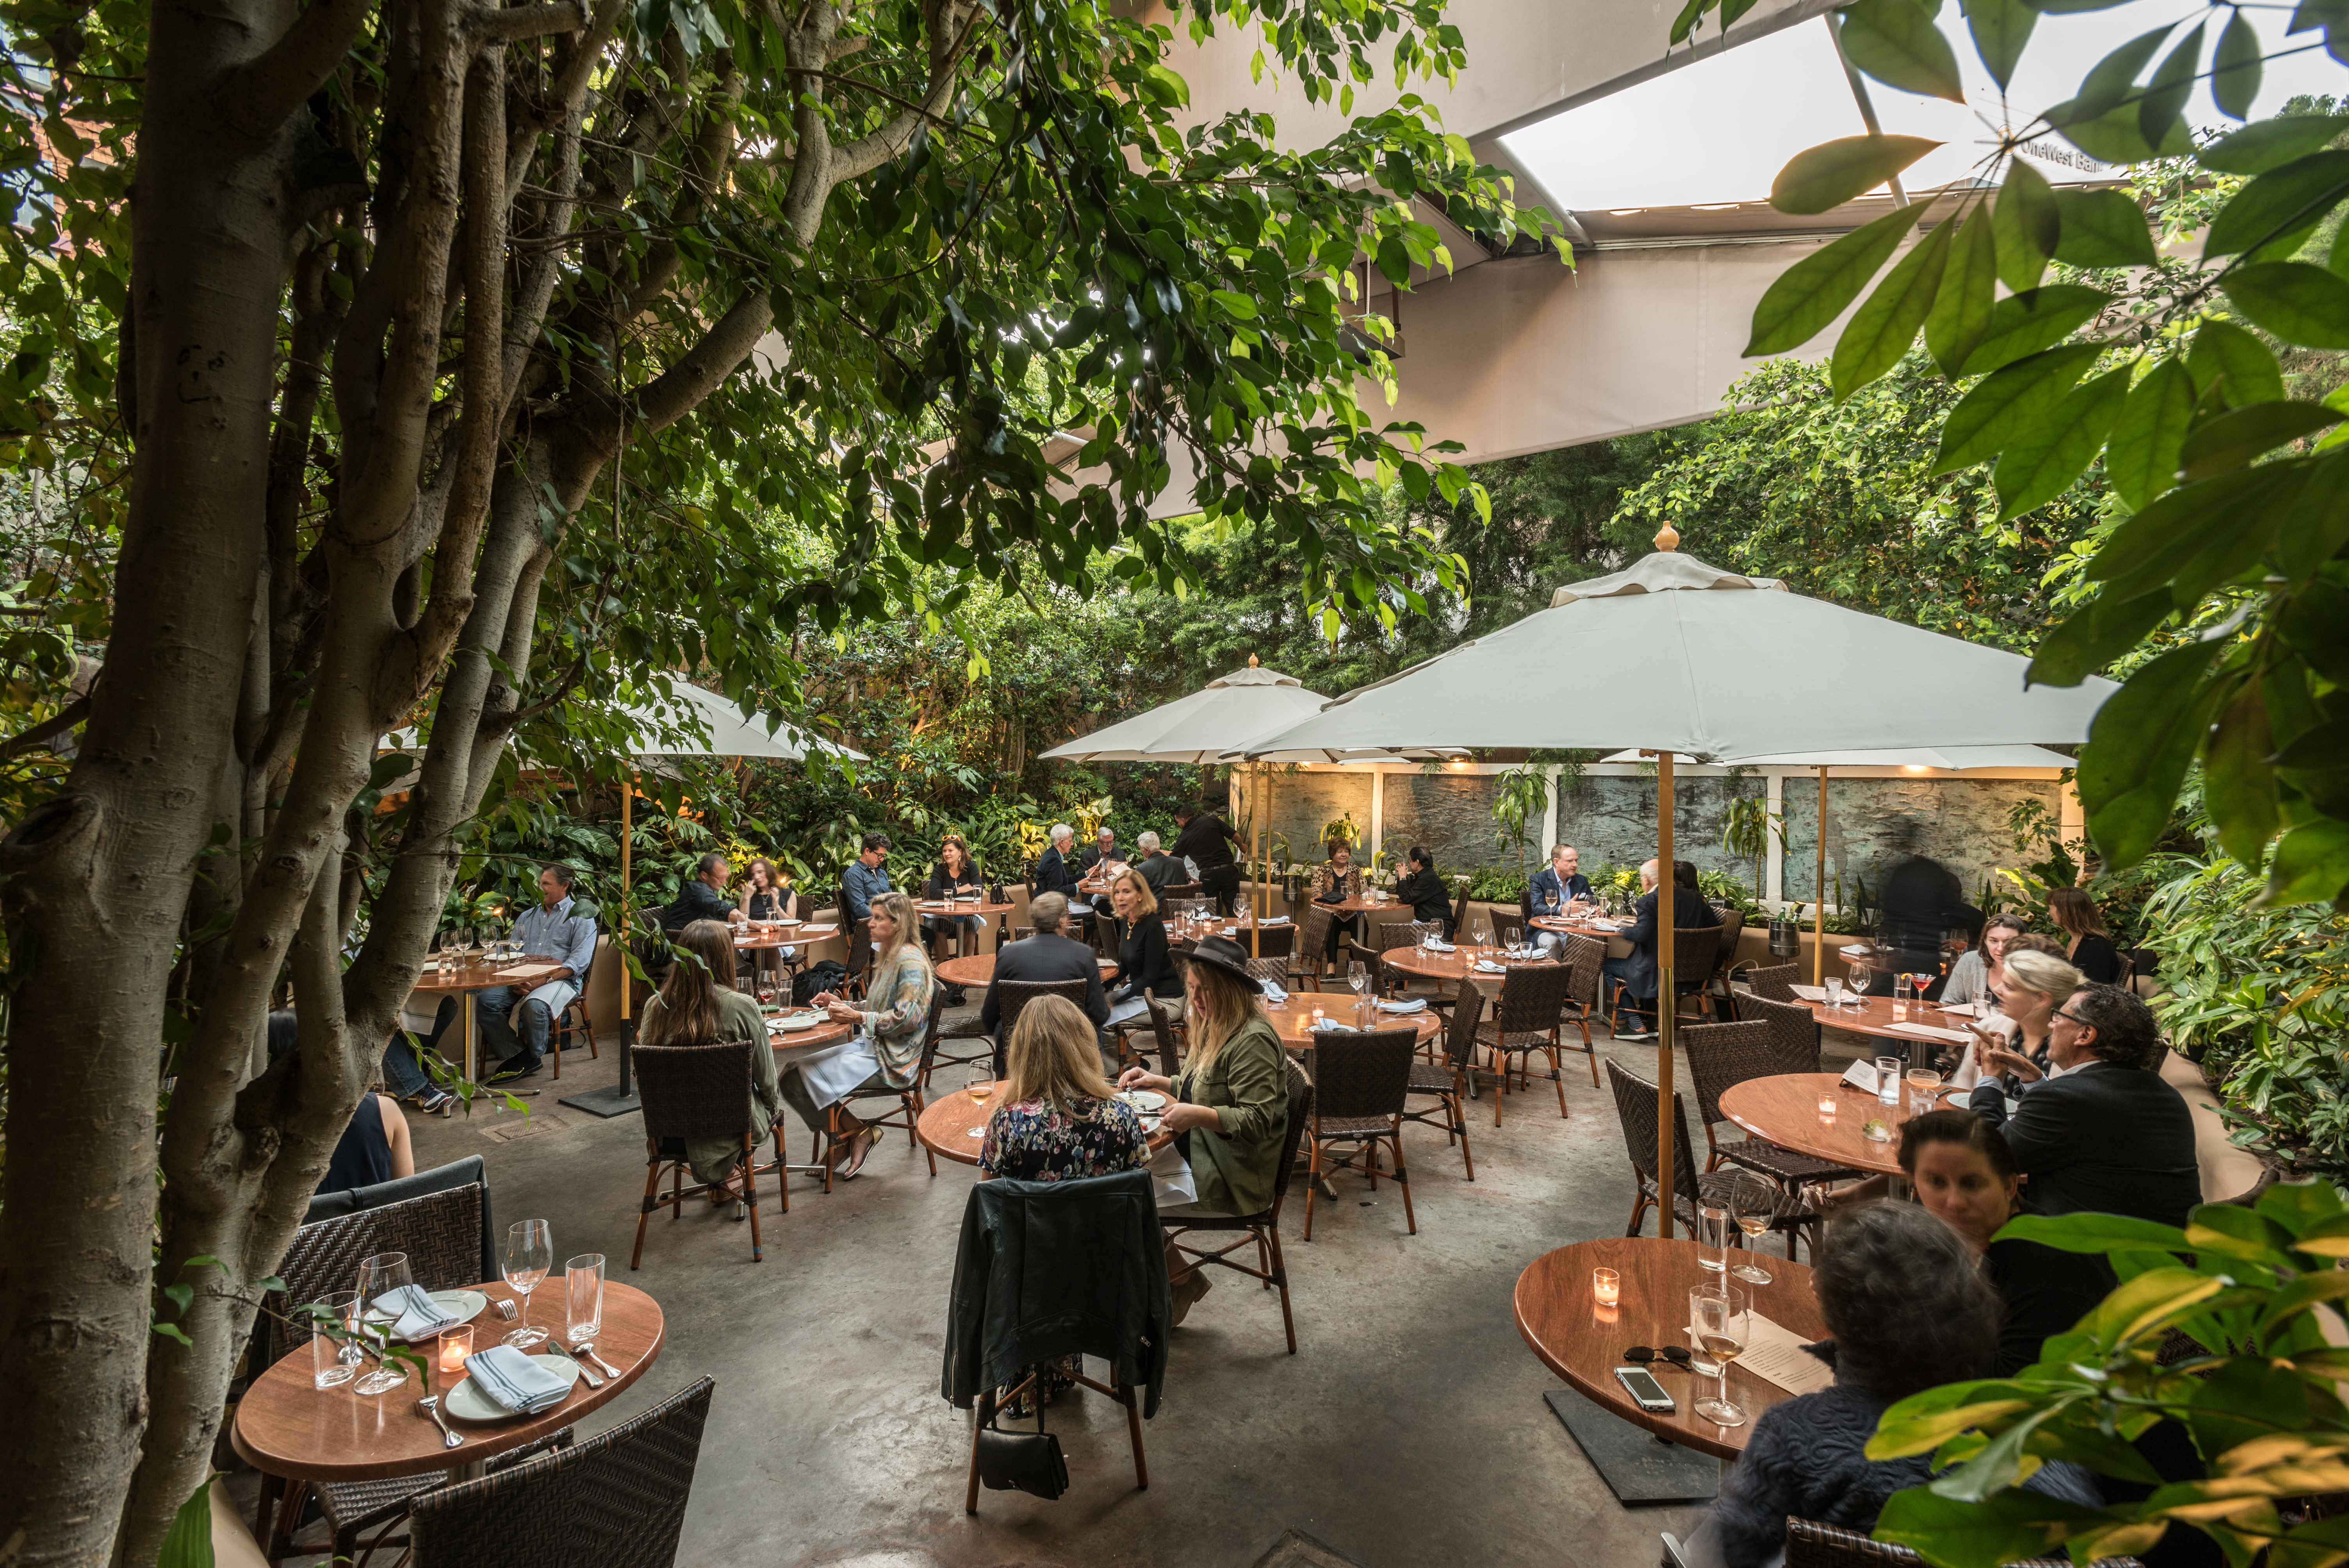 the patio power rankings where to eat drink outside los angeles the infatuation - Restaurant Patio